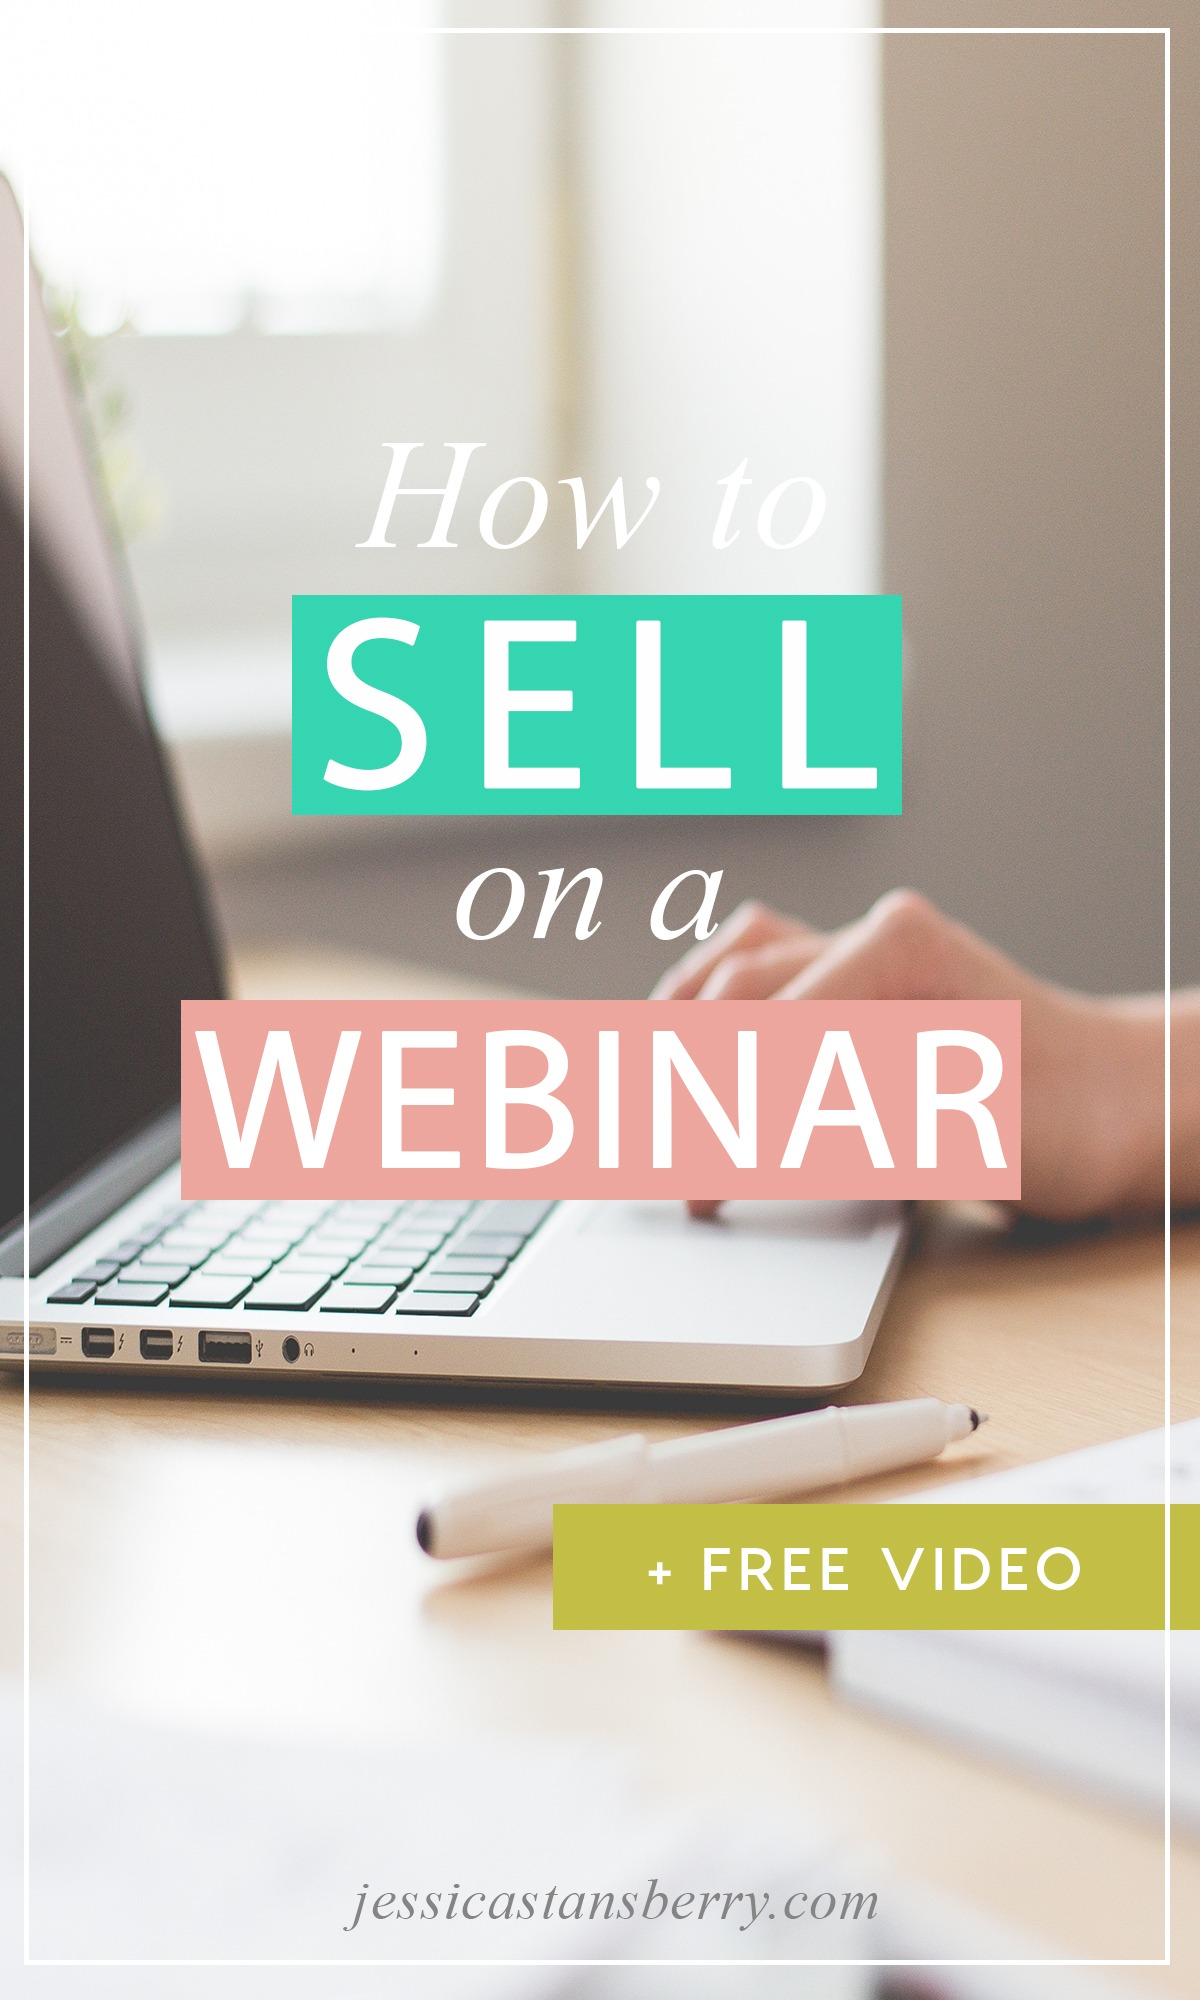 How to Sell on a Webinar